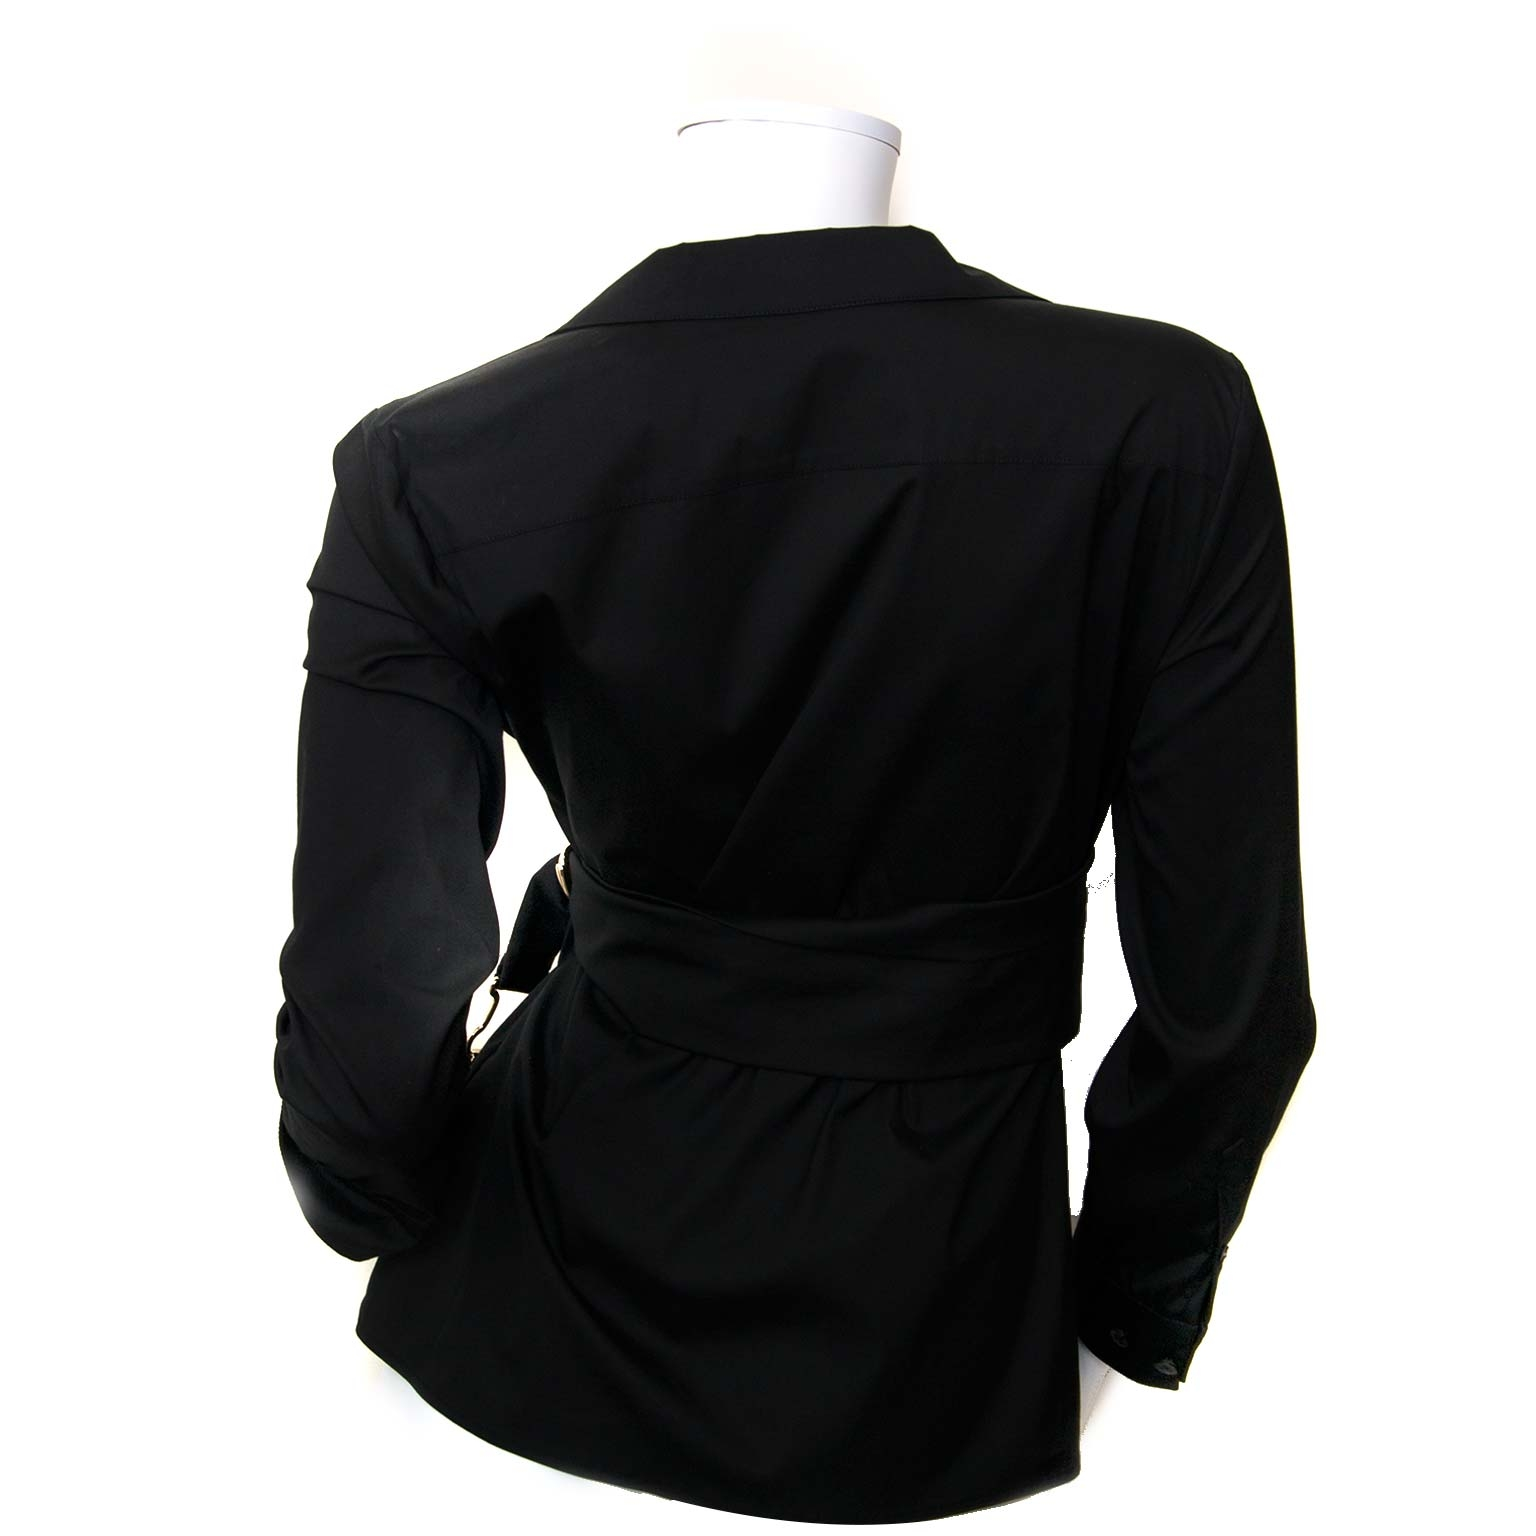 gucci front belted black shirt now for sale at labellov vintage fashion webshop belgium